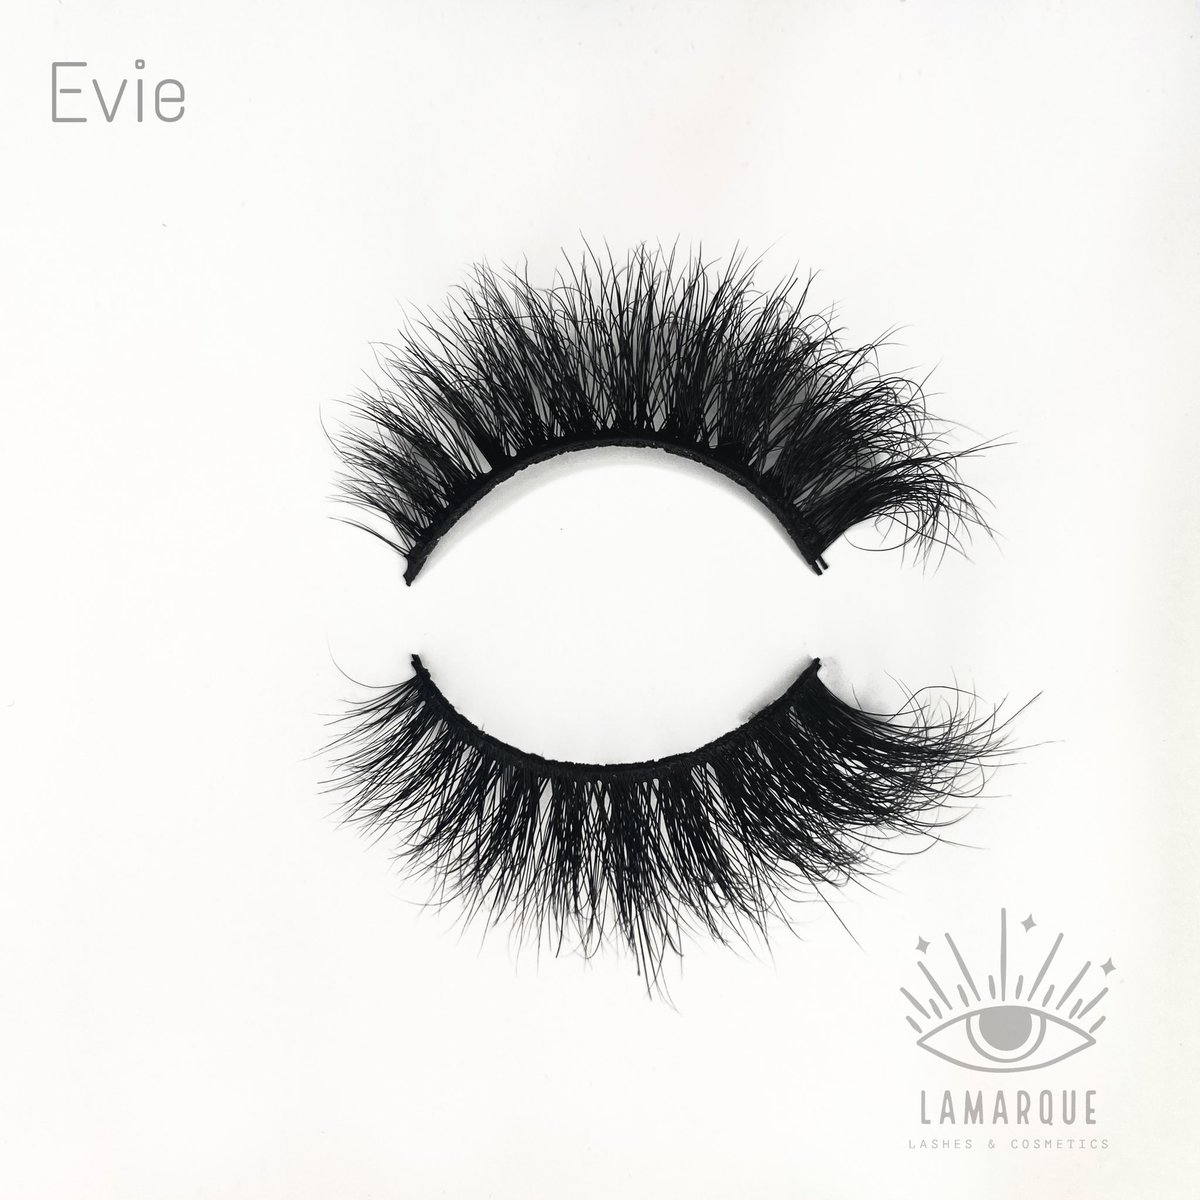 """⚜️Introducing Our Lash In The Style """"Evie"""" Launching soon ⚜️ #falselashes #falsies #lashes #falselashes #lashesfordays https://t.co/UVDnX8B44F"""